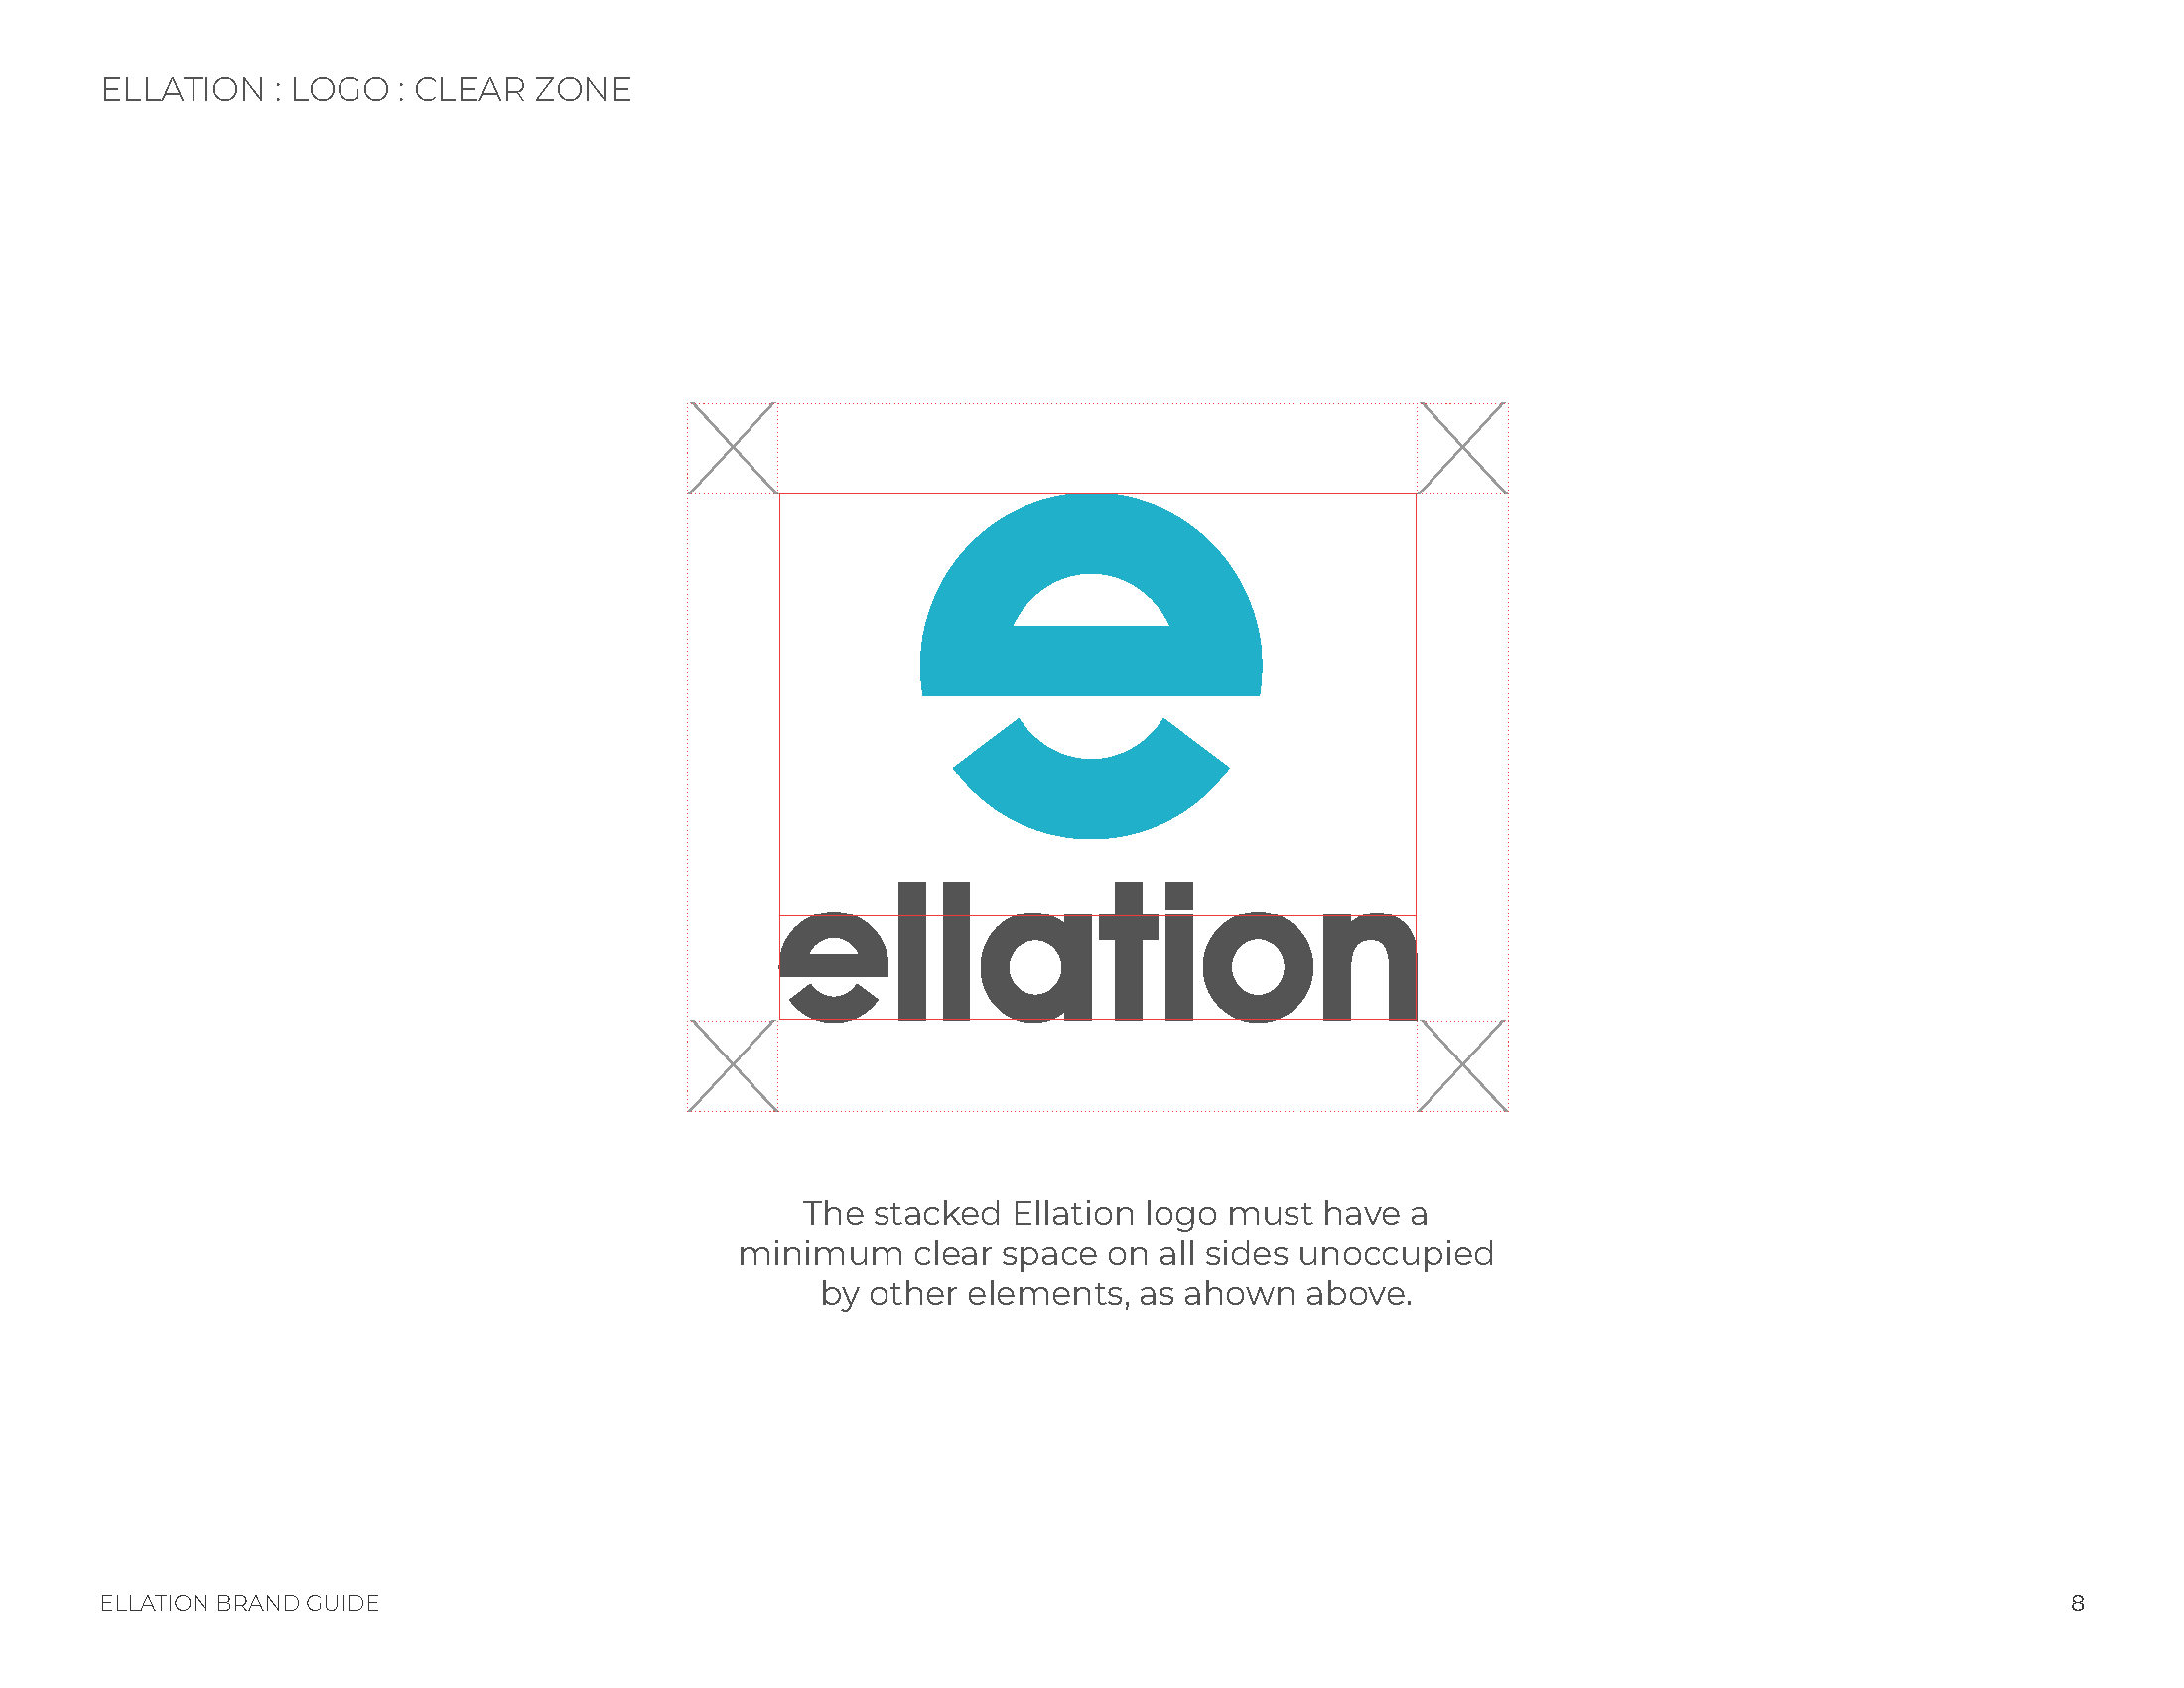 Ellation-Style Guide_Page_09.png